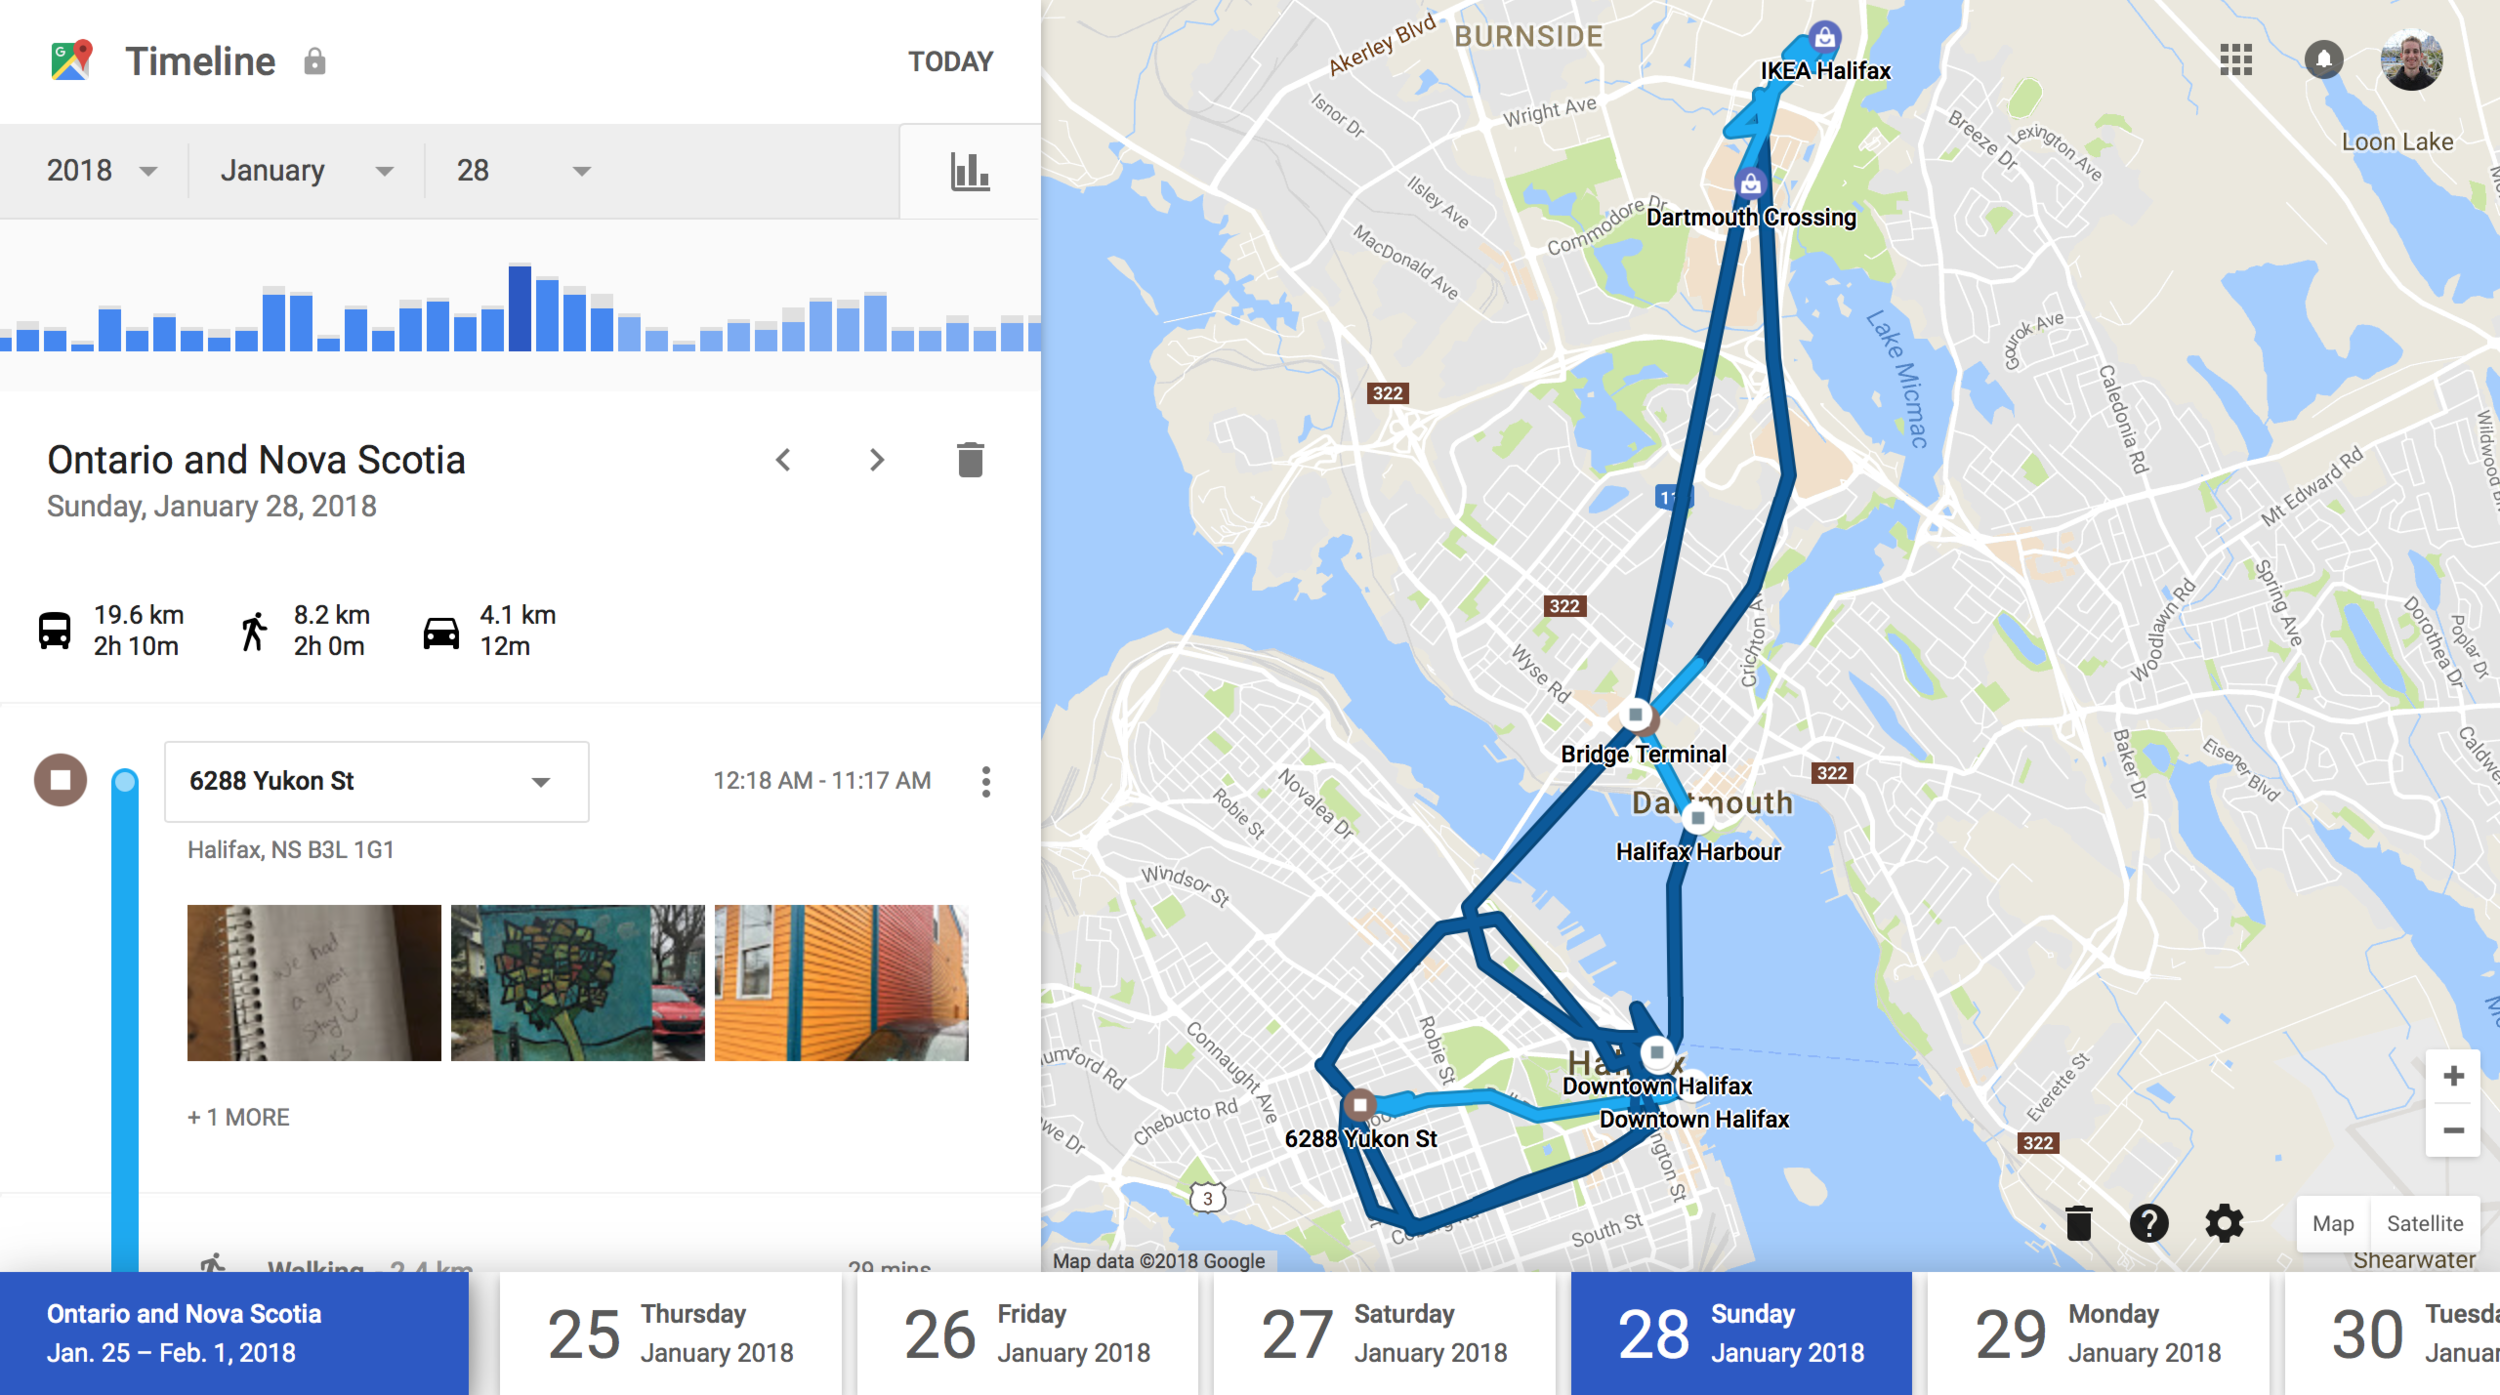 With the Google Maps app downloaded and location services enabled, the company tracked my every move on a recent trip to Halifax, including whether I walked, took the bus or a vehicle between each location.